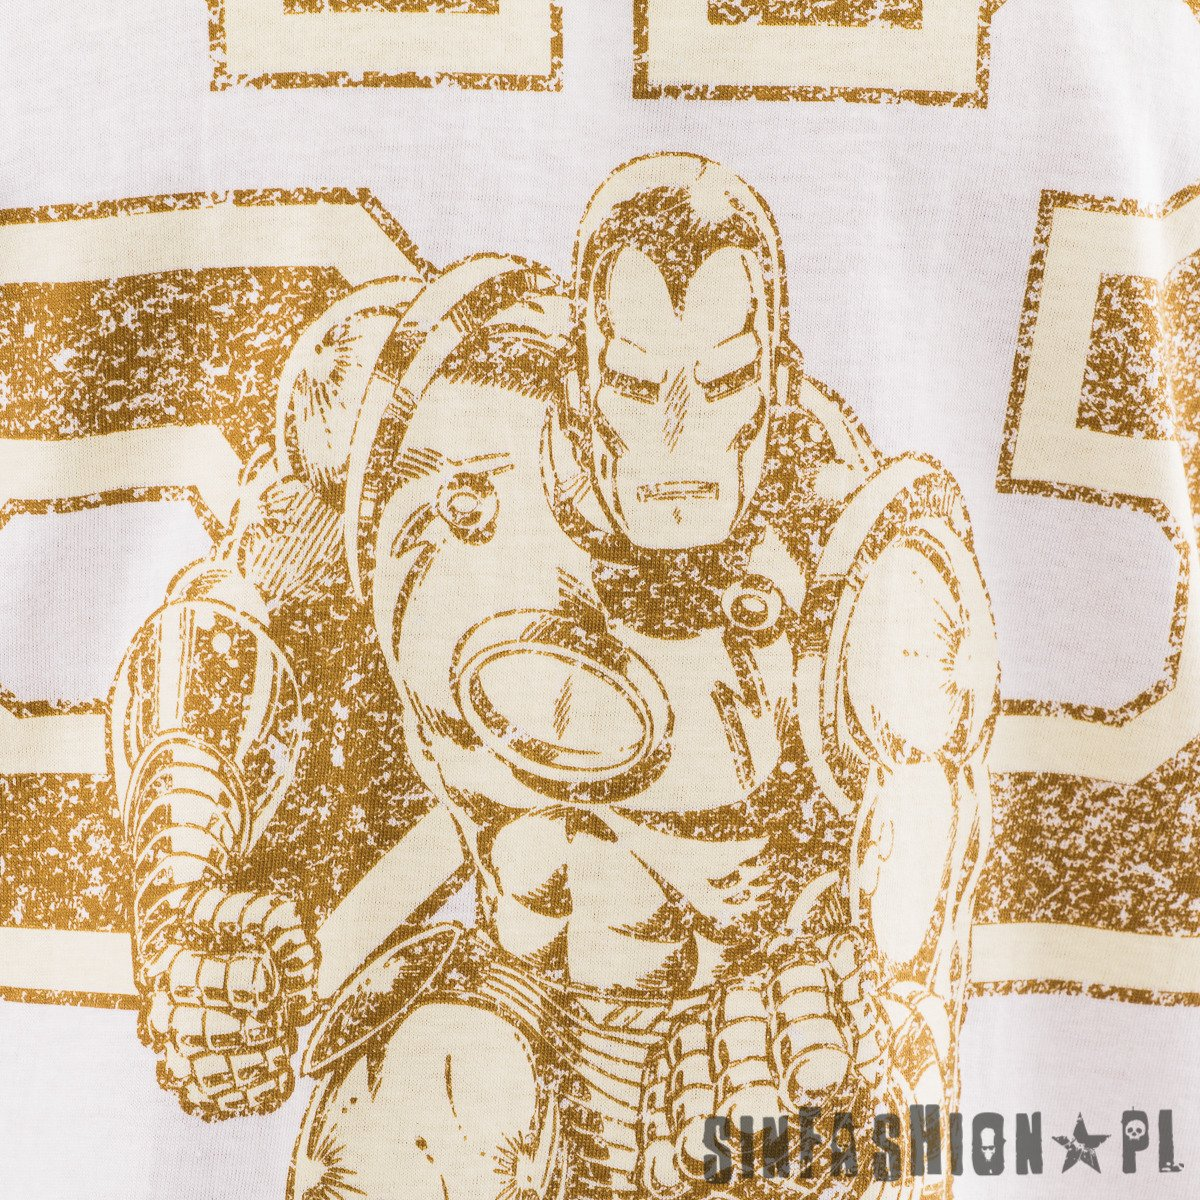 TANK Marvel IRON MAN 63